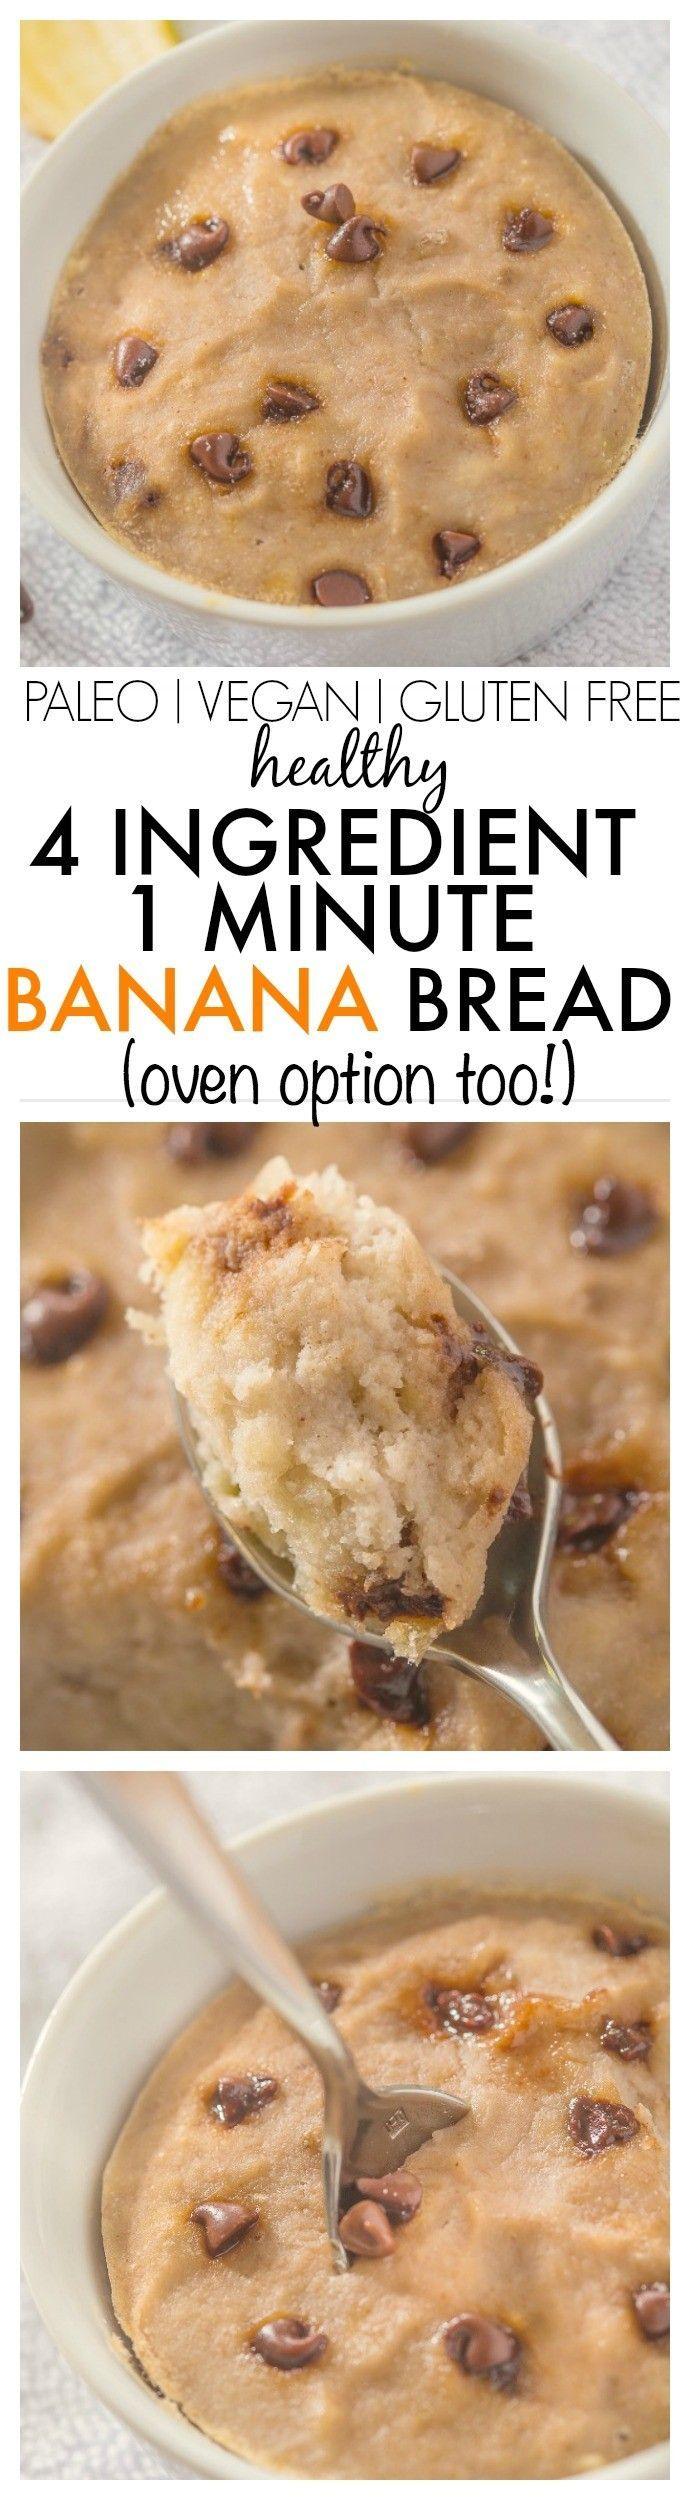 Healthy 1 Minute Banana Bread using 4 ingredients and SO moist, gooey yet tender on the outside- It has NO butter, oil, sugar or white flour!- There is an oven option too! #vegan #glutenfree #breakfast